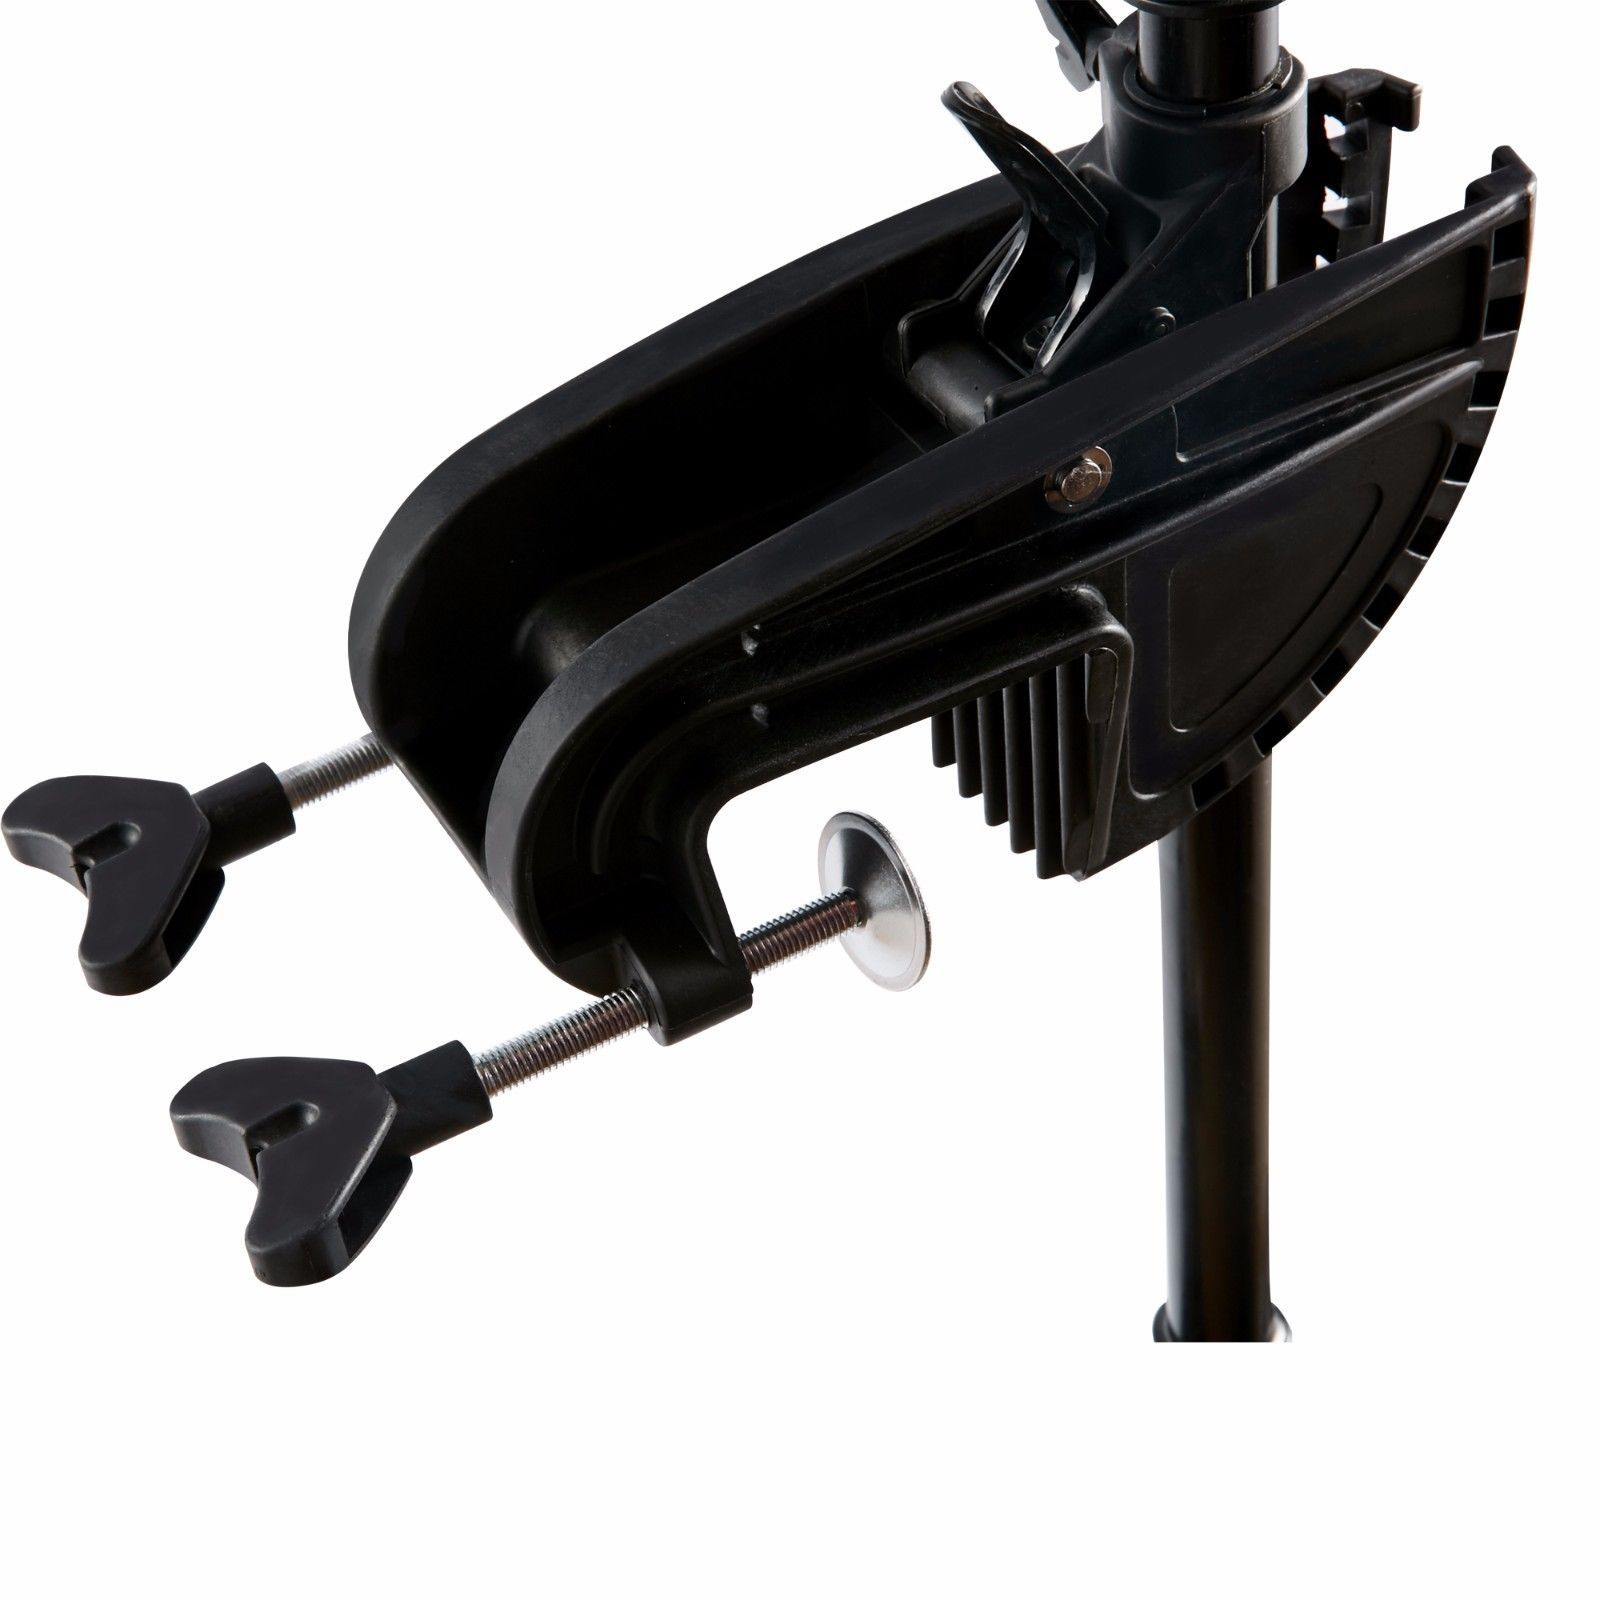 Cloud Mountain 46LBS Thrust Electric Trolling Motor for Fishing Boats